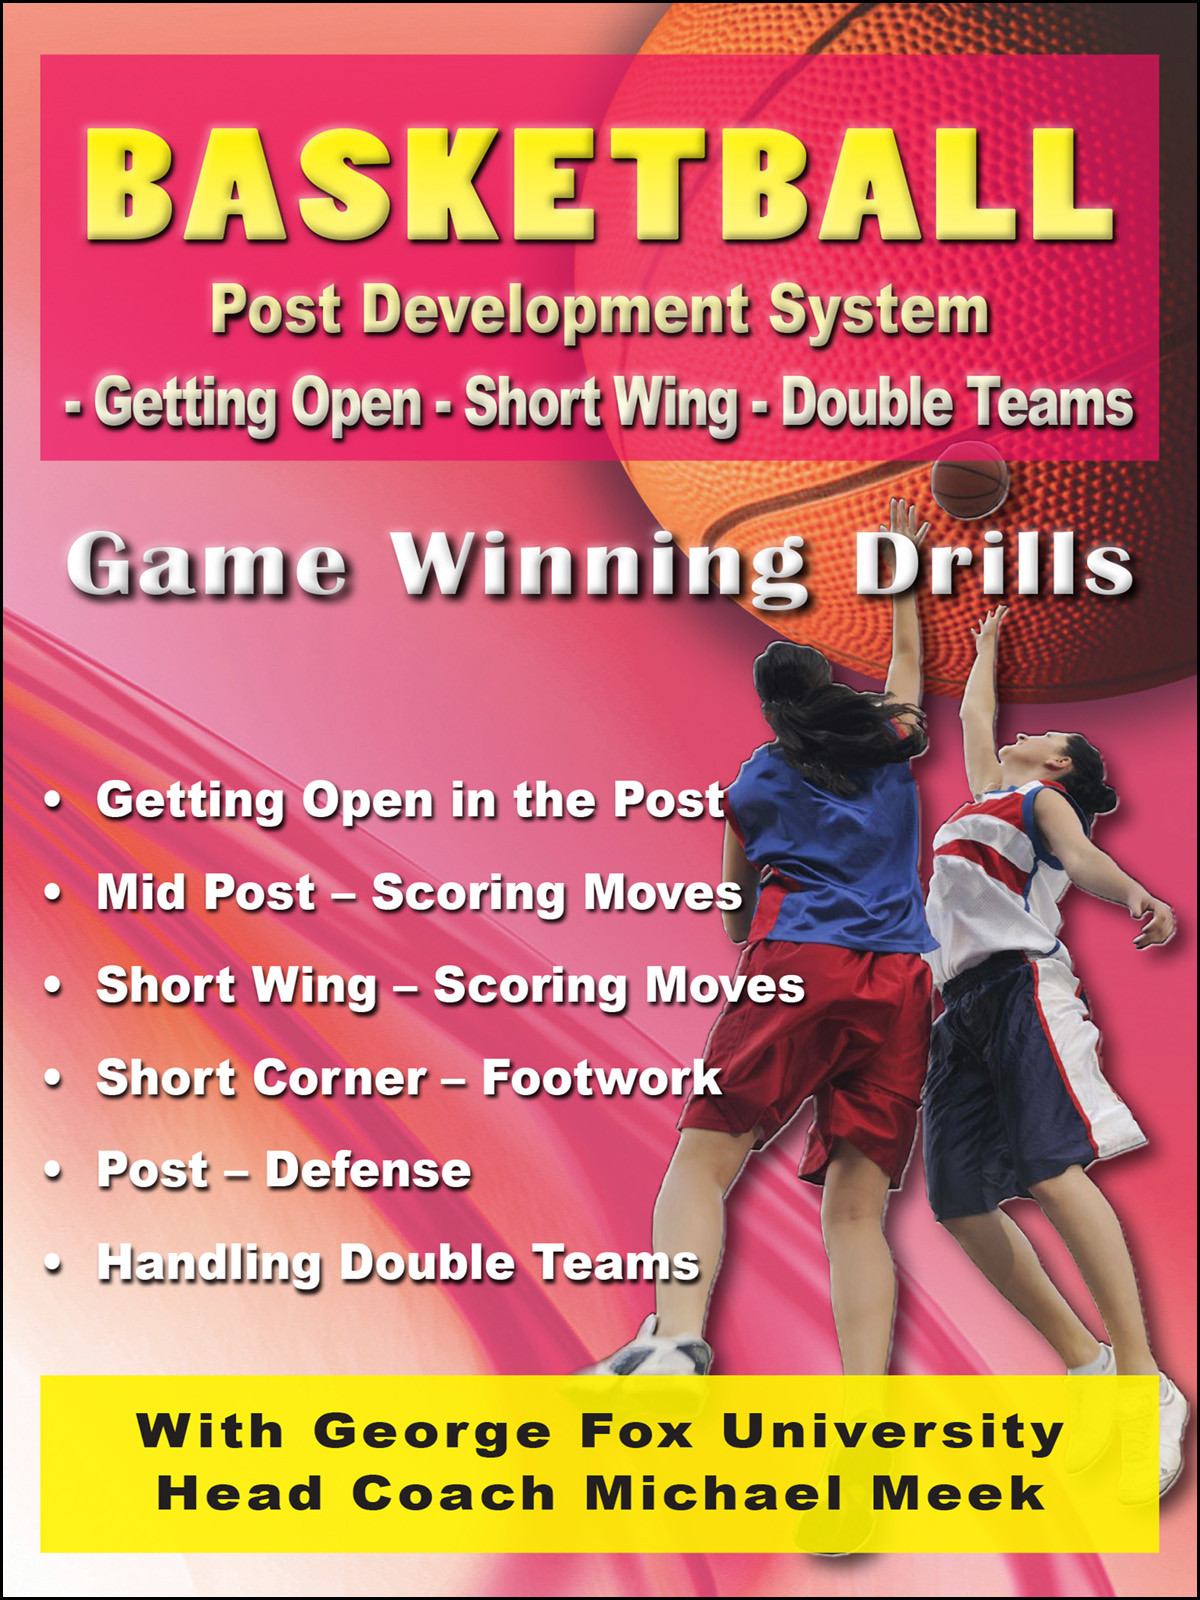 K4209 - Basketball Post Development System - Getting Open-Short Wing-Double Teams